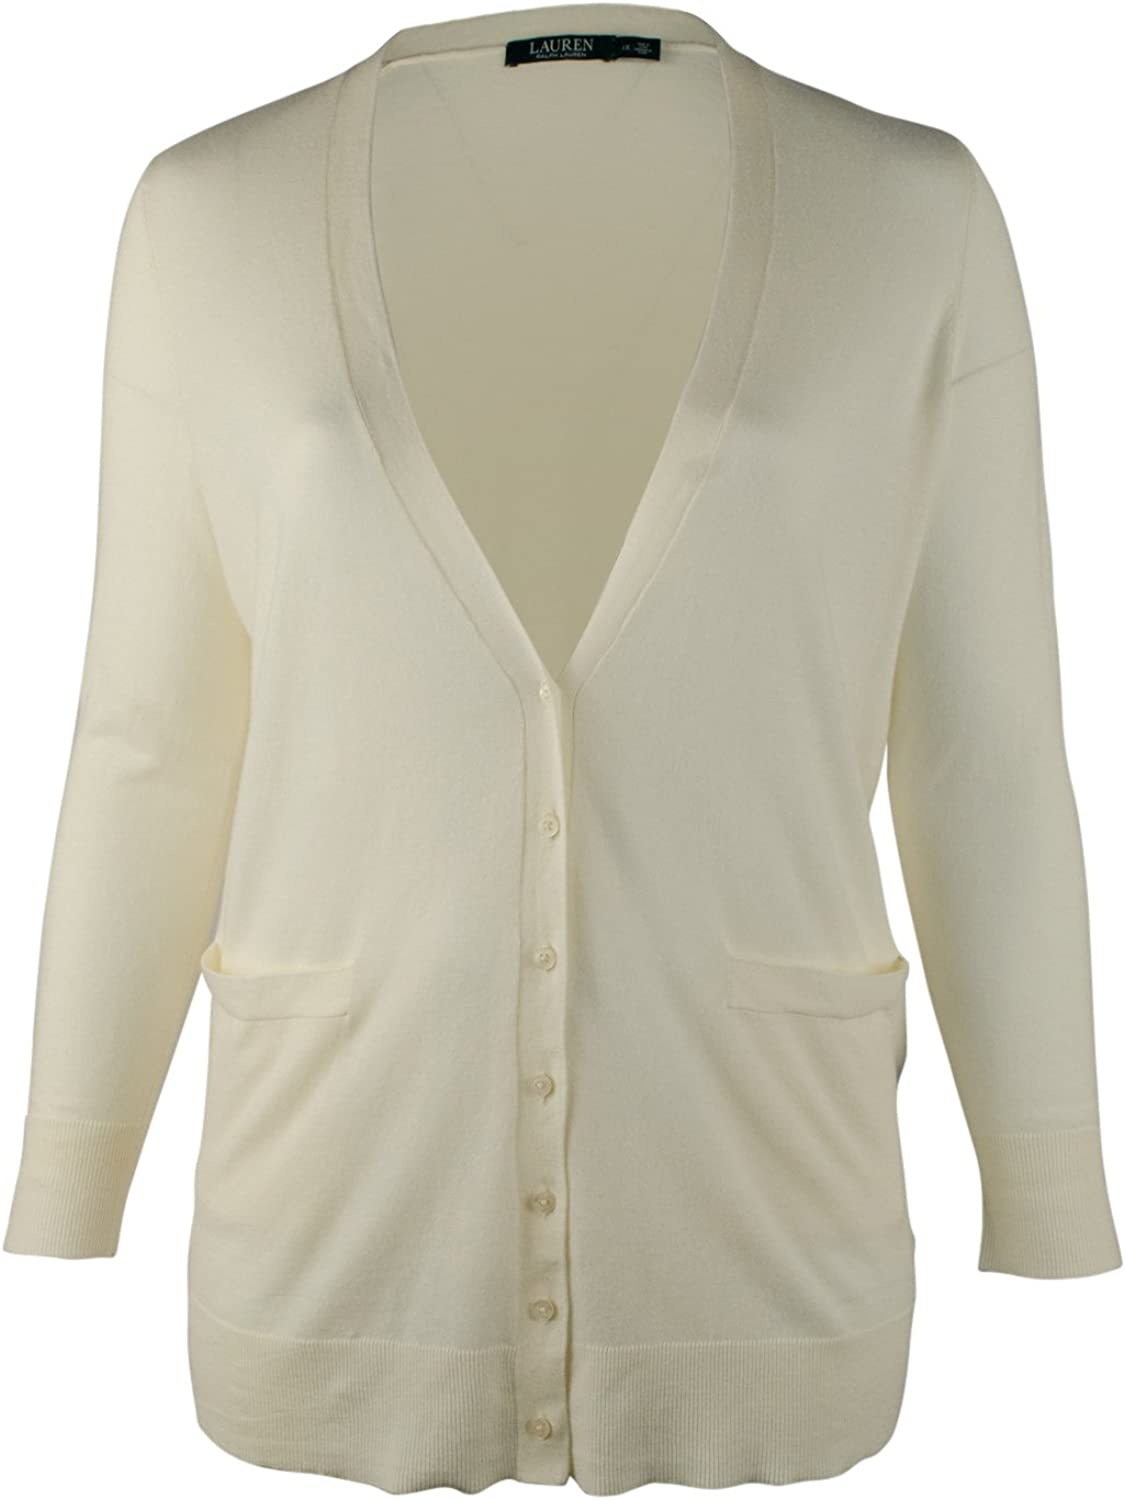 LAUREN RALPH LAUREN Womens Plus Ribbed Trim Cardigan Top Ivory 3X